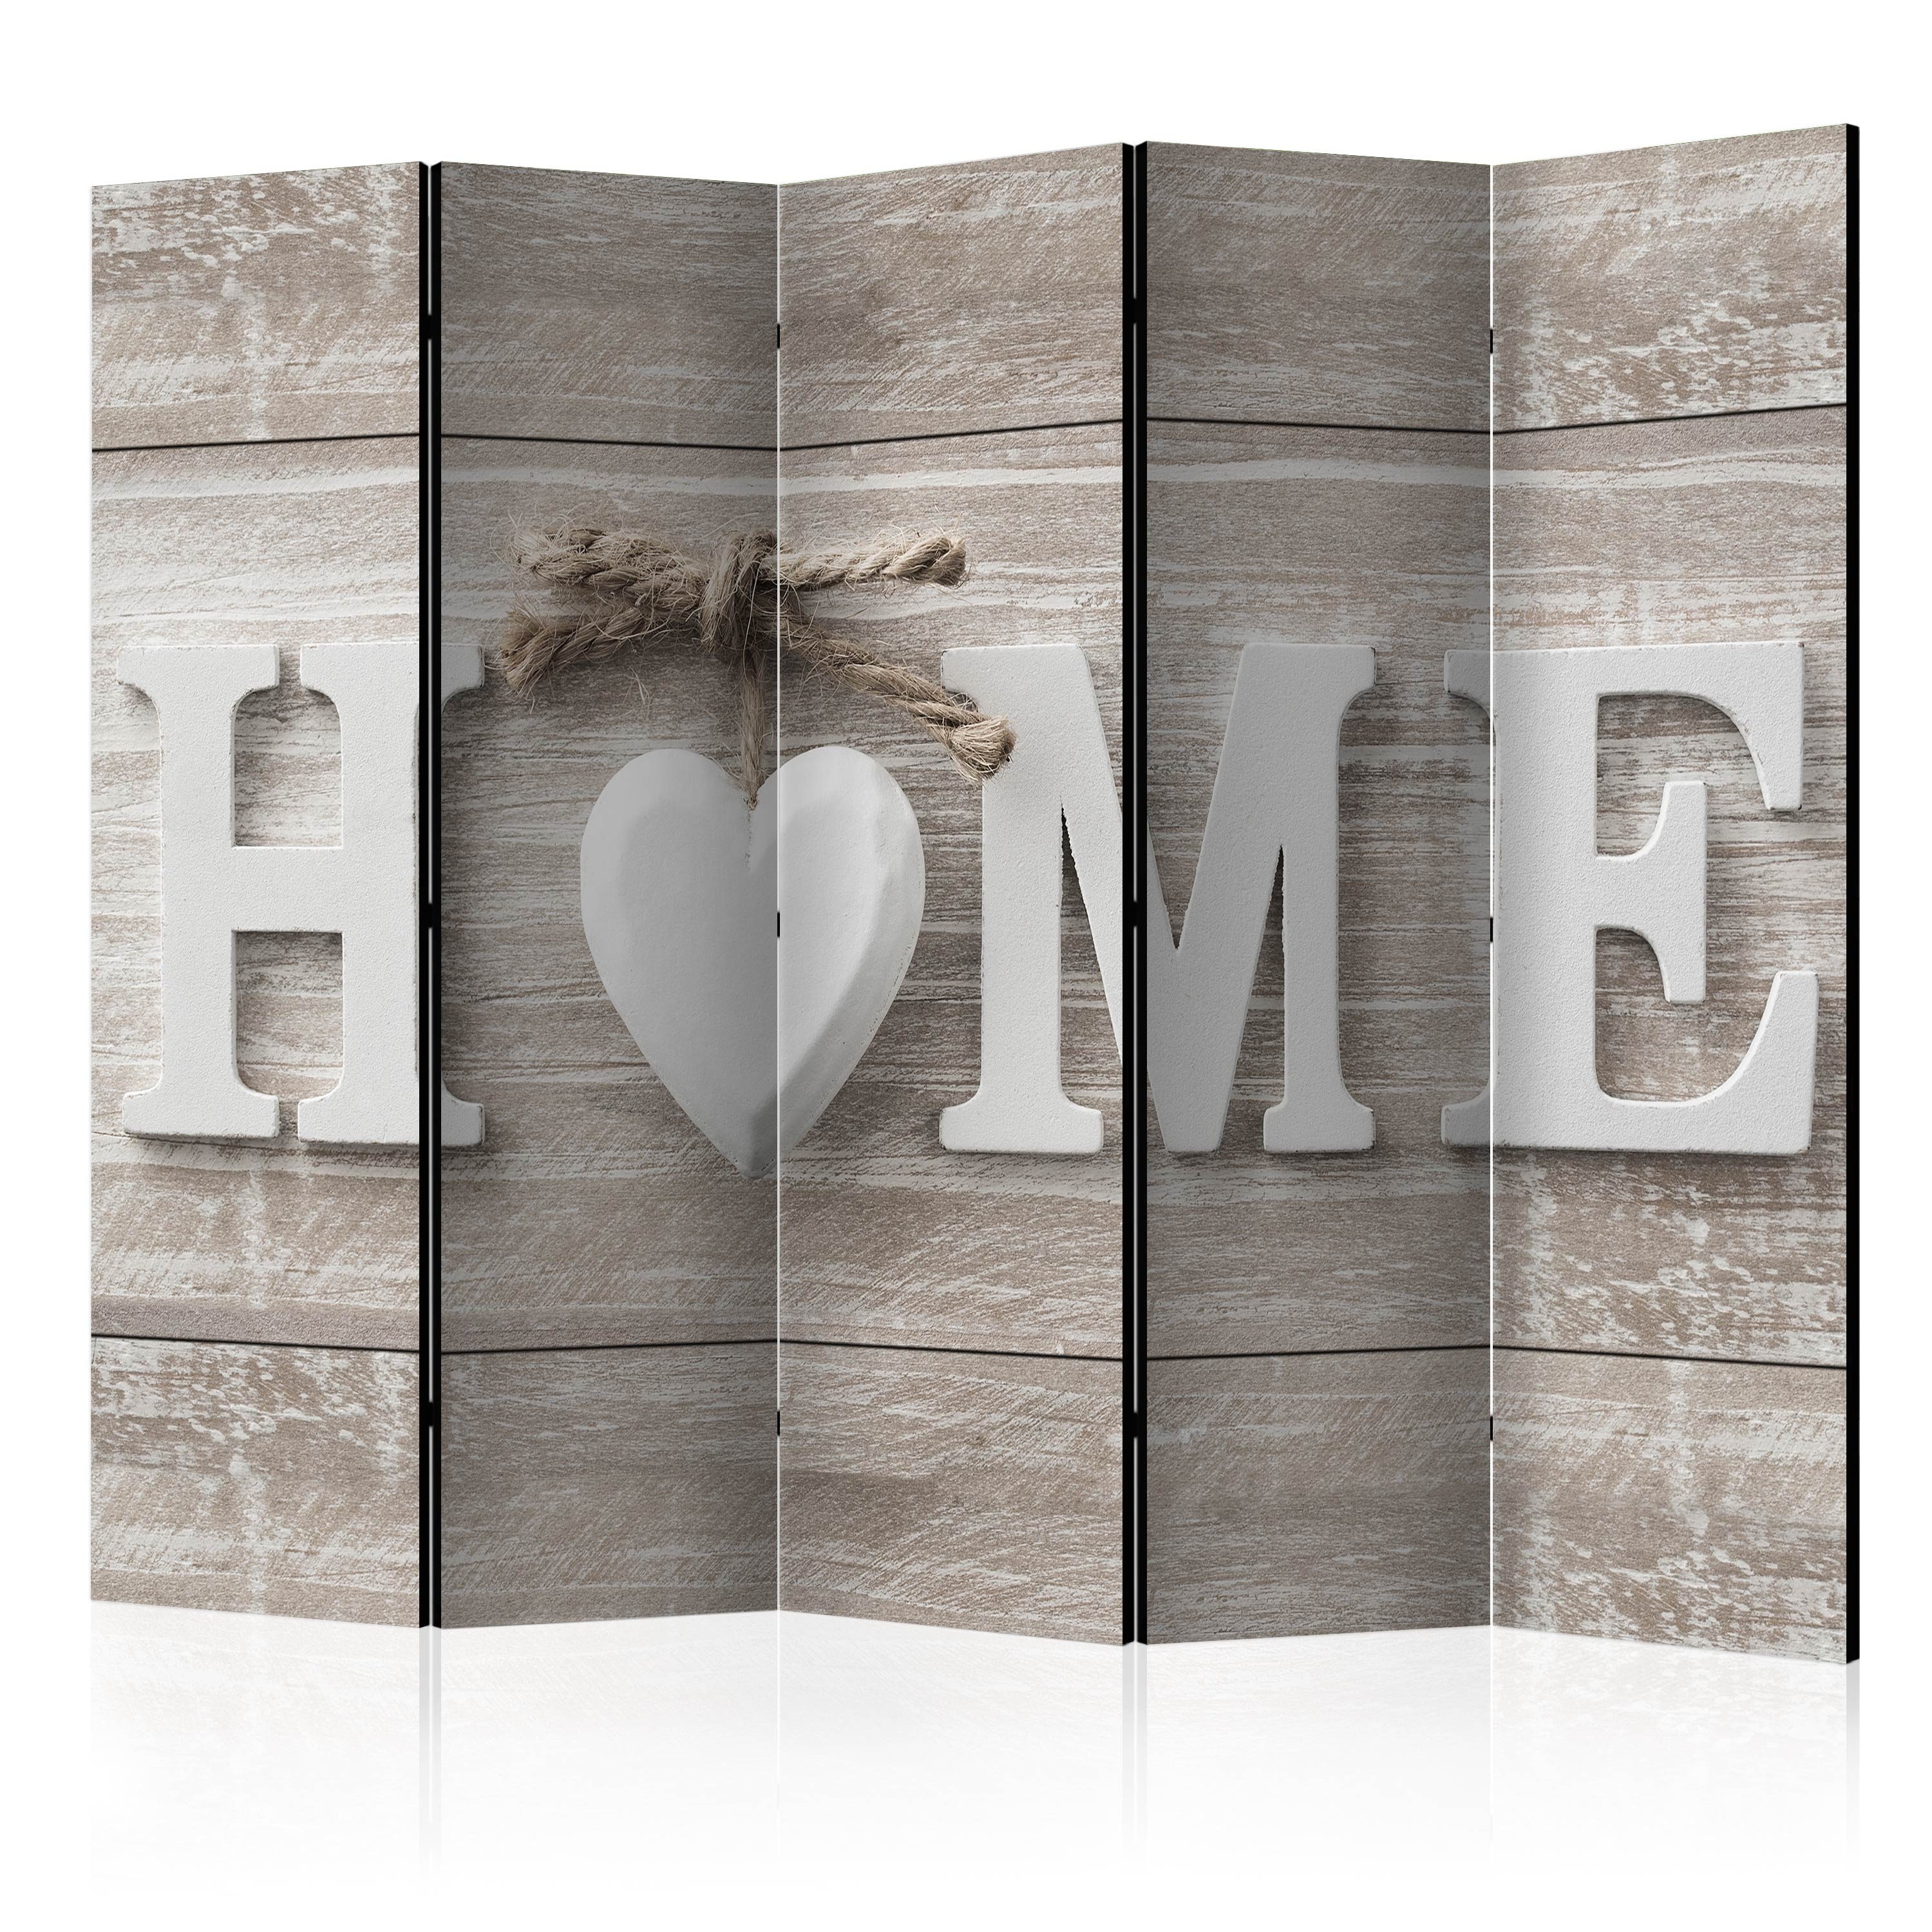 Paravento - Room divider - Home and heart 225X172 cm